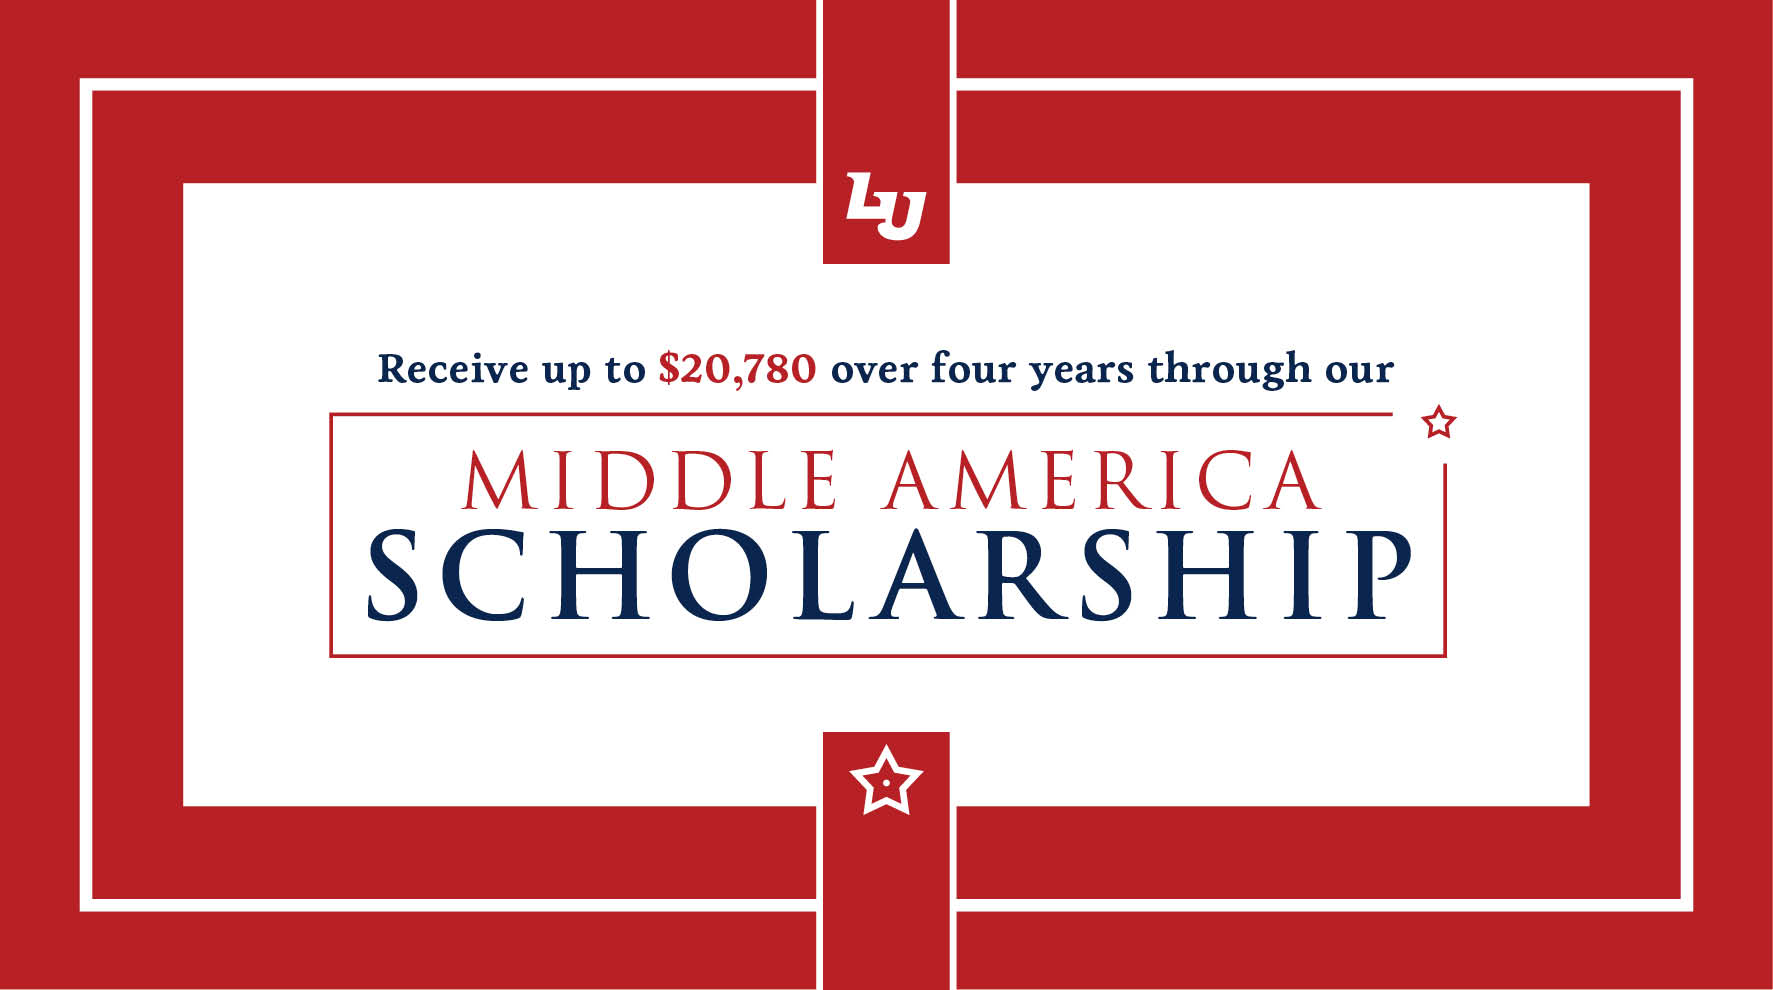 Middle America Scholarship recipients receive up to $20,780 over four years